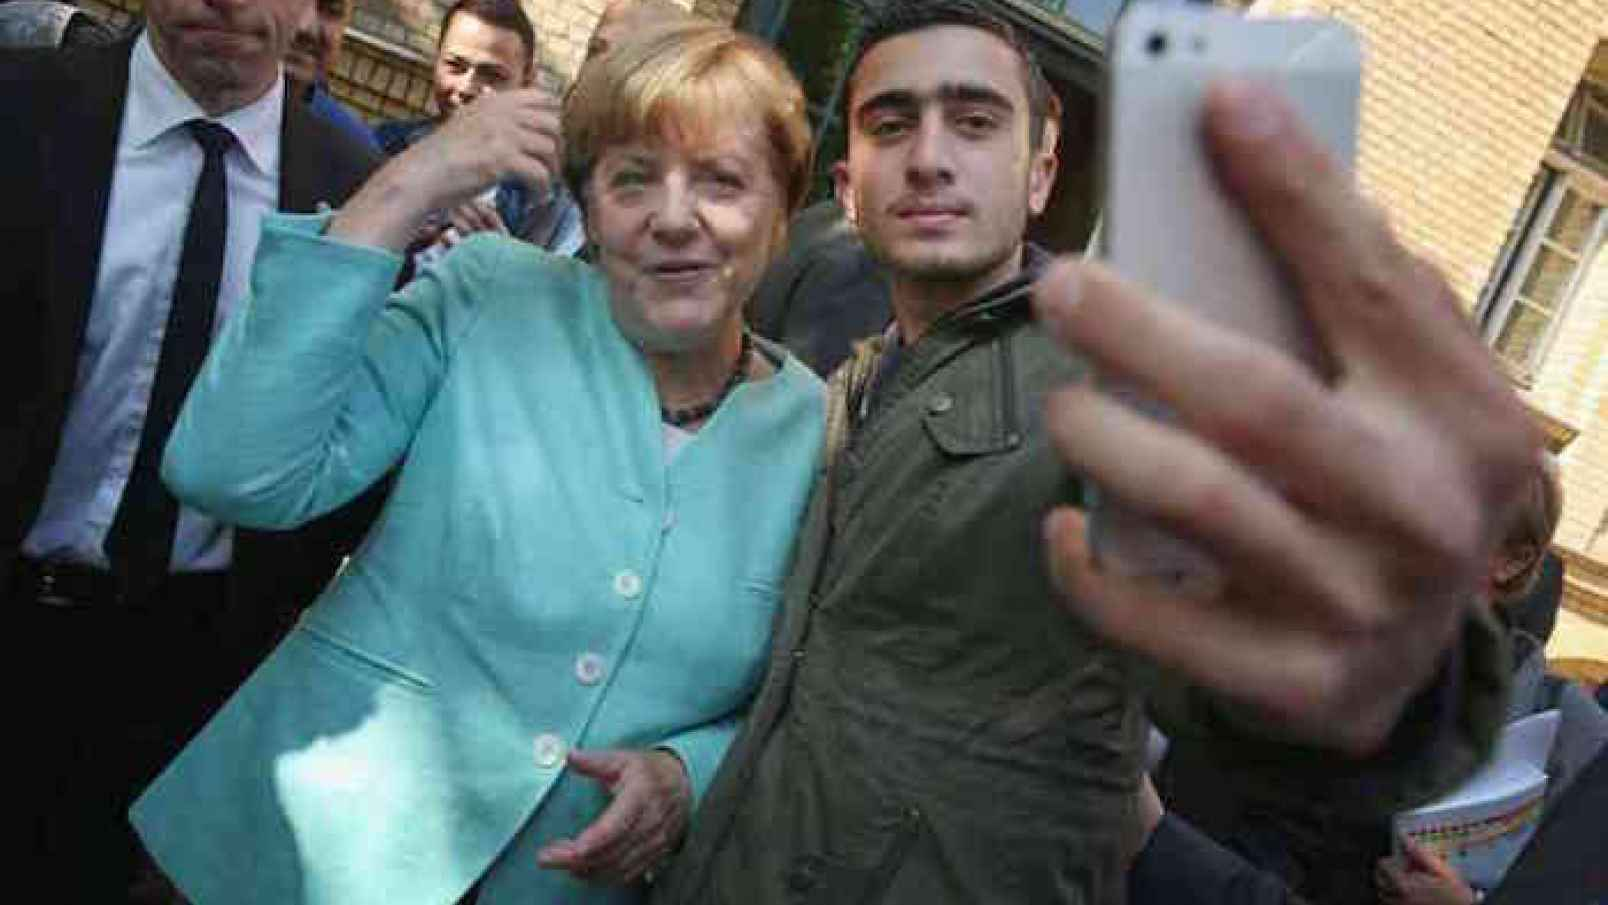 BREAKING: Reported Assassination Attempt On Germany's Angela Merkel By Armed Man